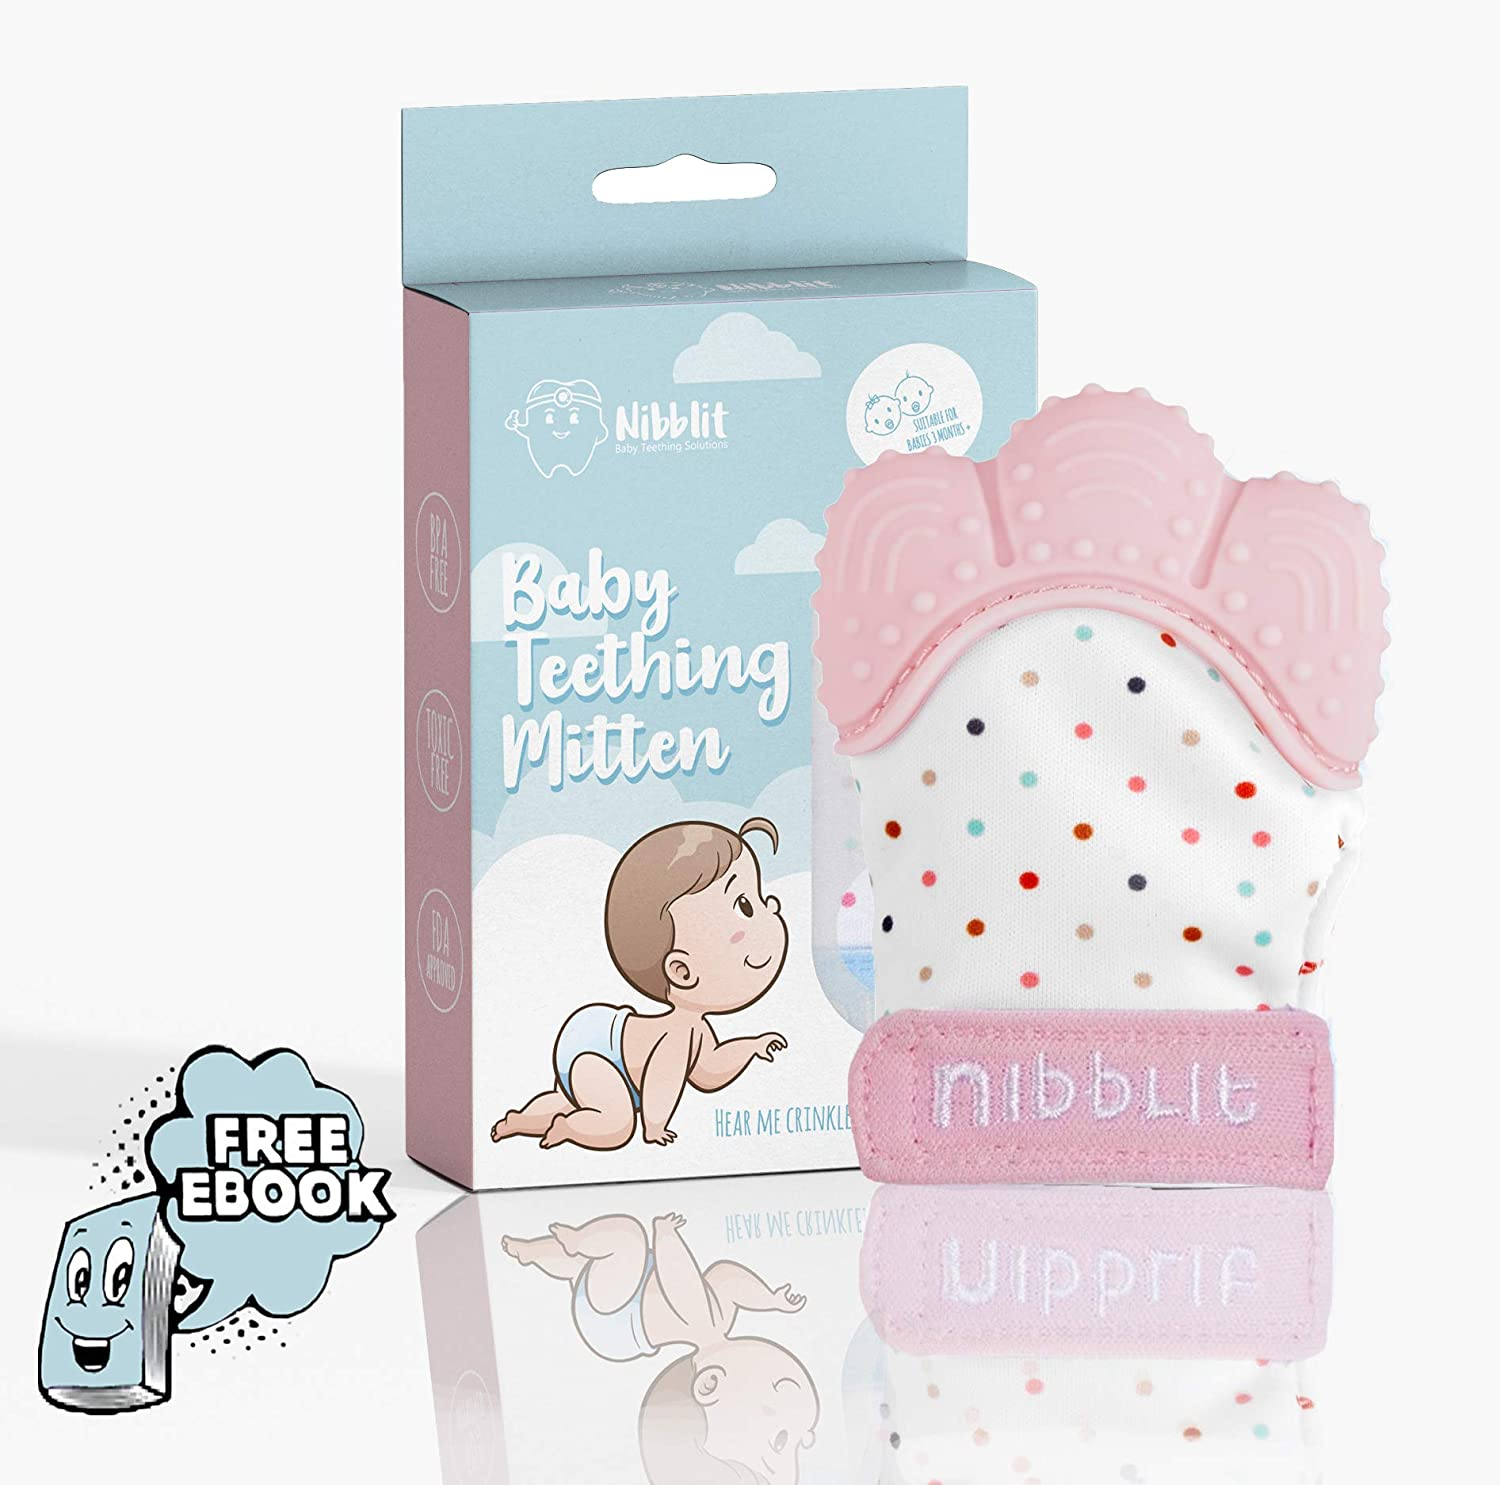 Nibblit Baby Teething Mitten | Self-Soothing Pain Relief Teether Toy Mitt & Glove